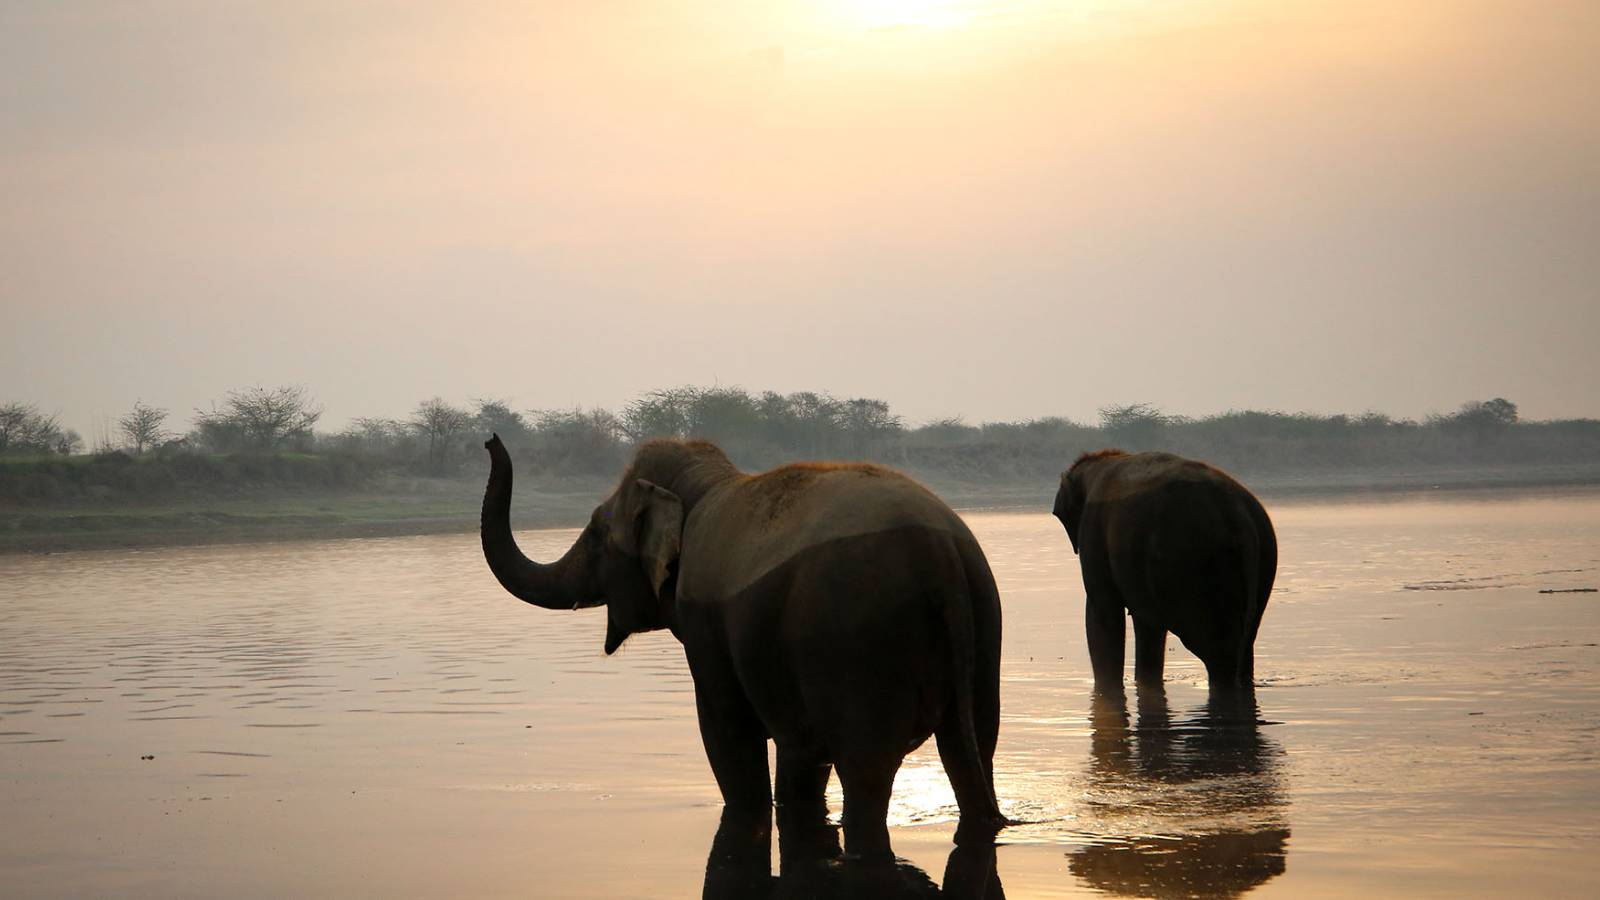 Sunset with rescued elephants at the Yamuna river